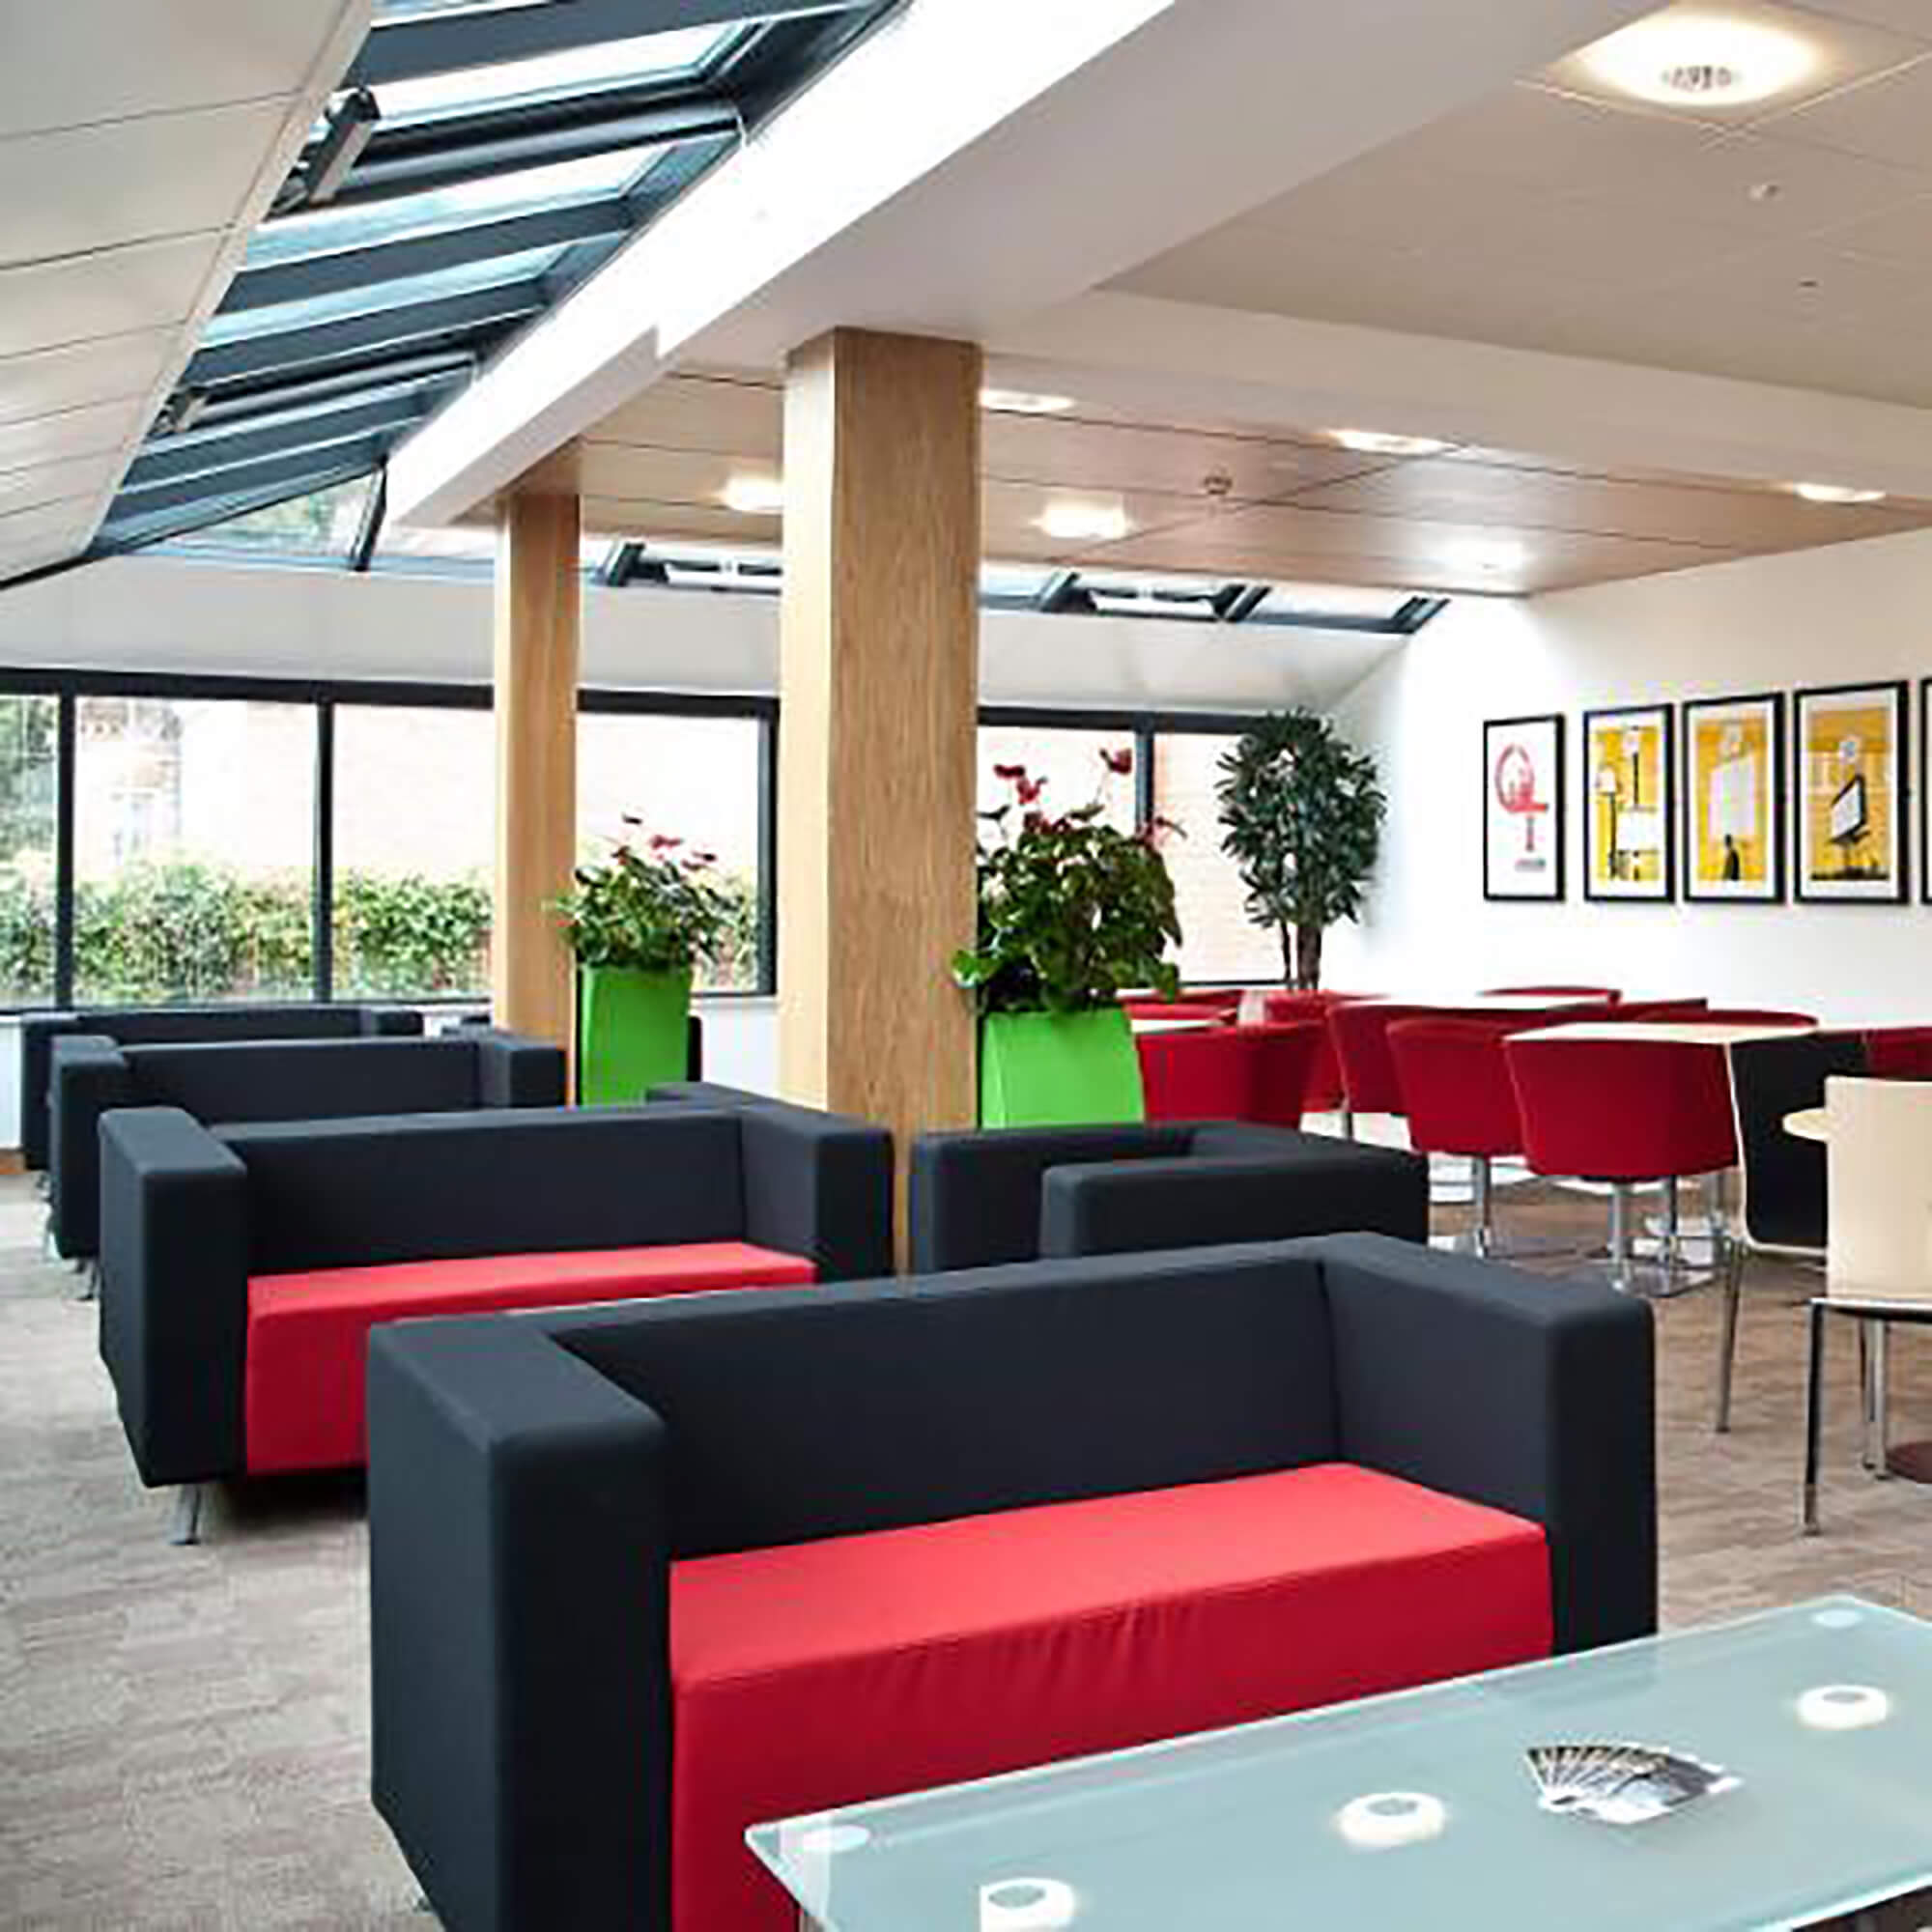 Sofas in informal business space